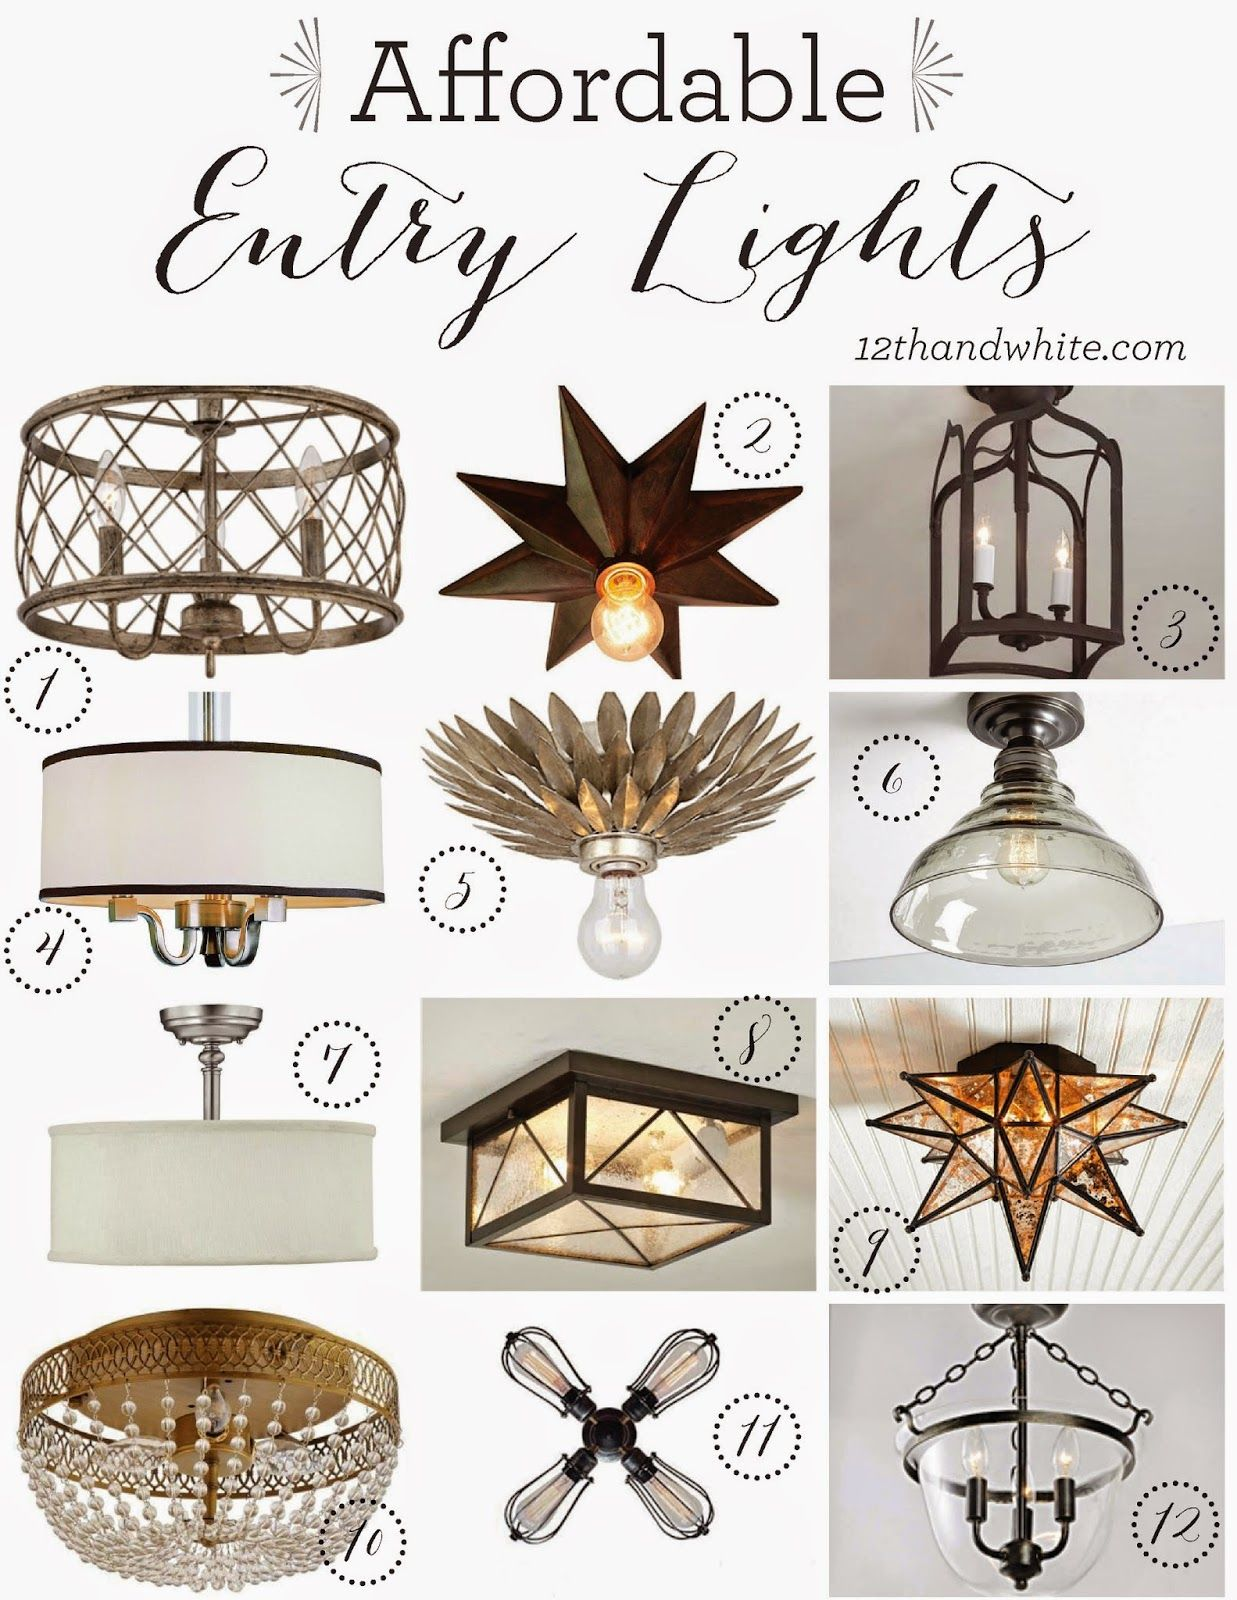 A New Entry Light {And Other Affordable Options} Entry